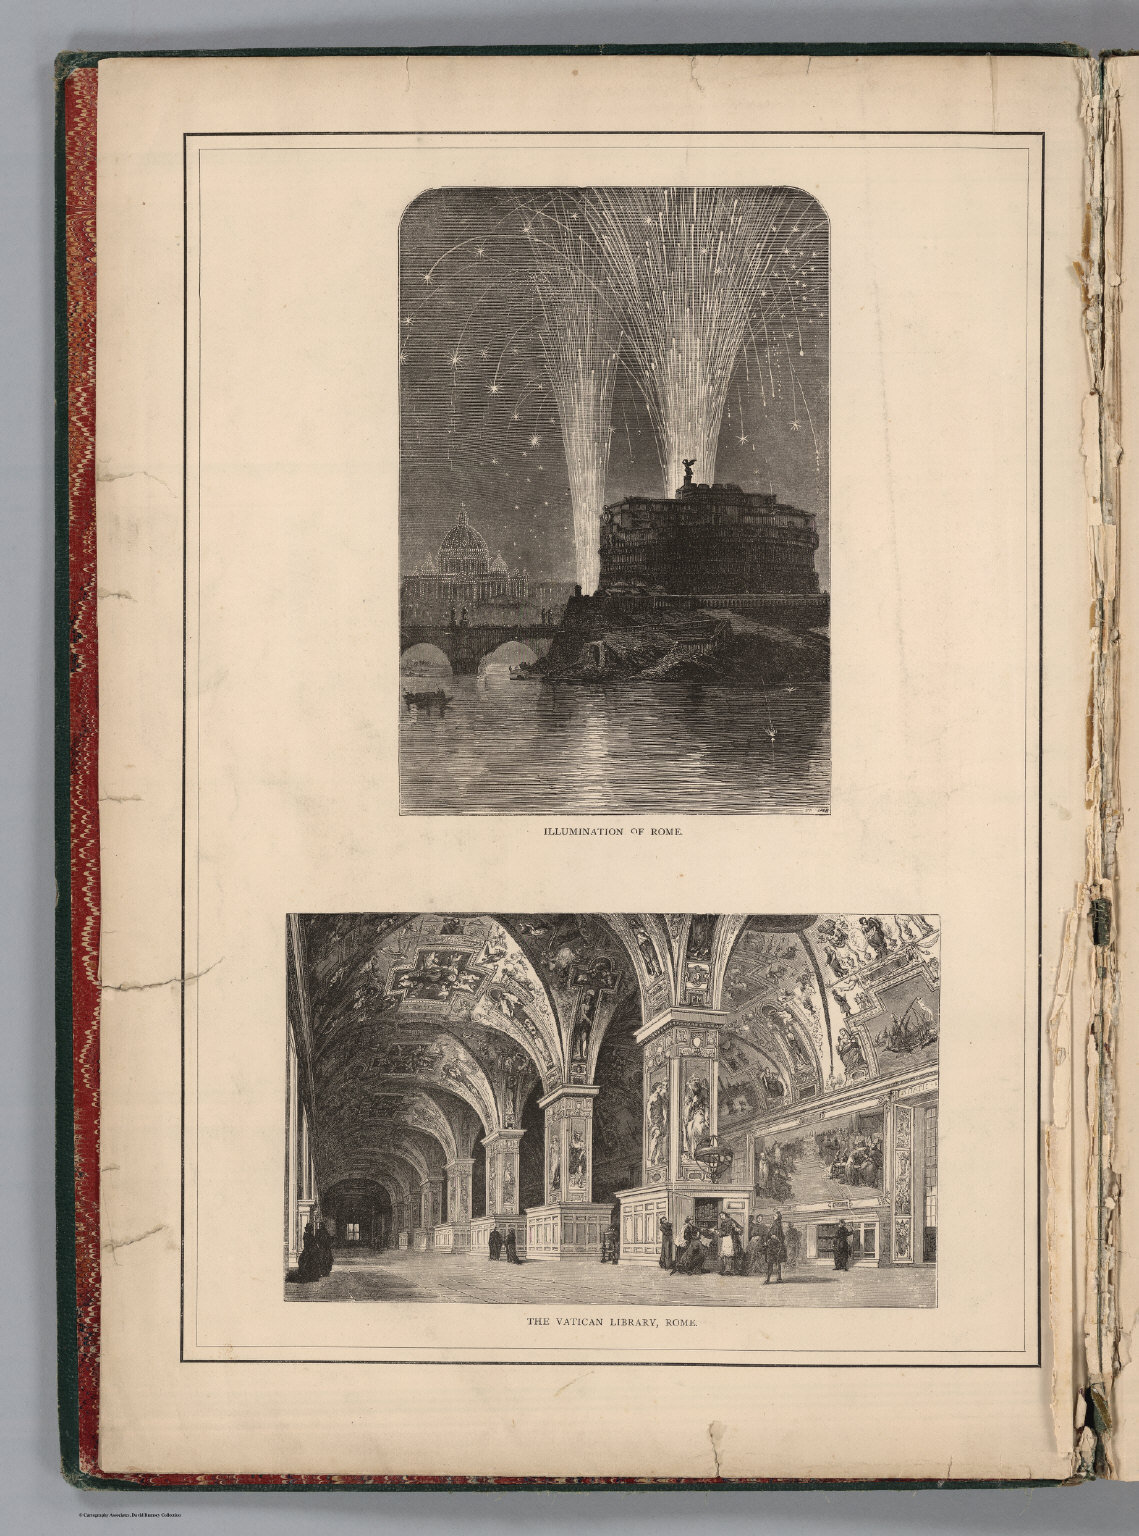 Frontispiece #2: Illumination of Rome. The Vatican Library, Rome.